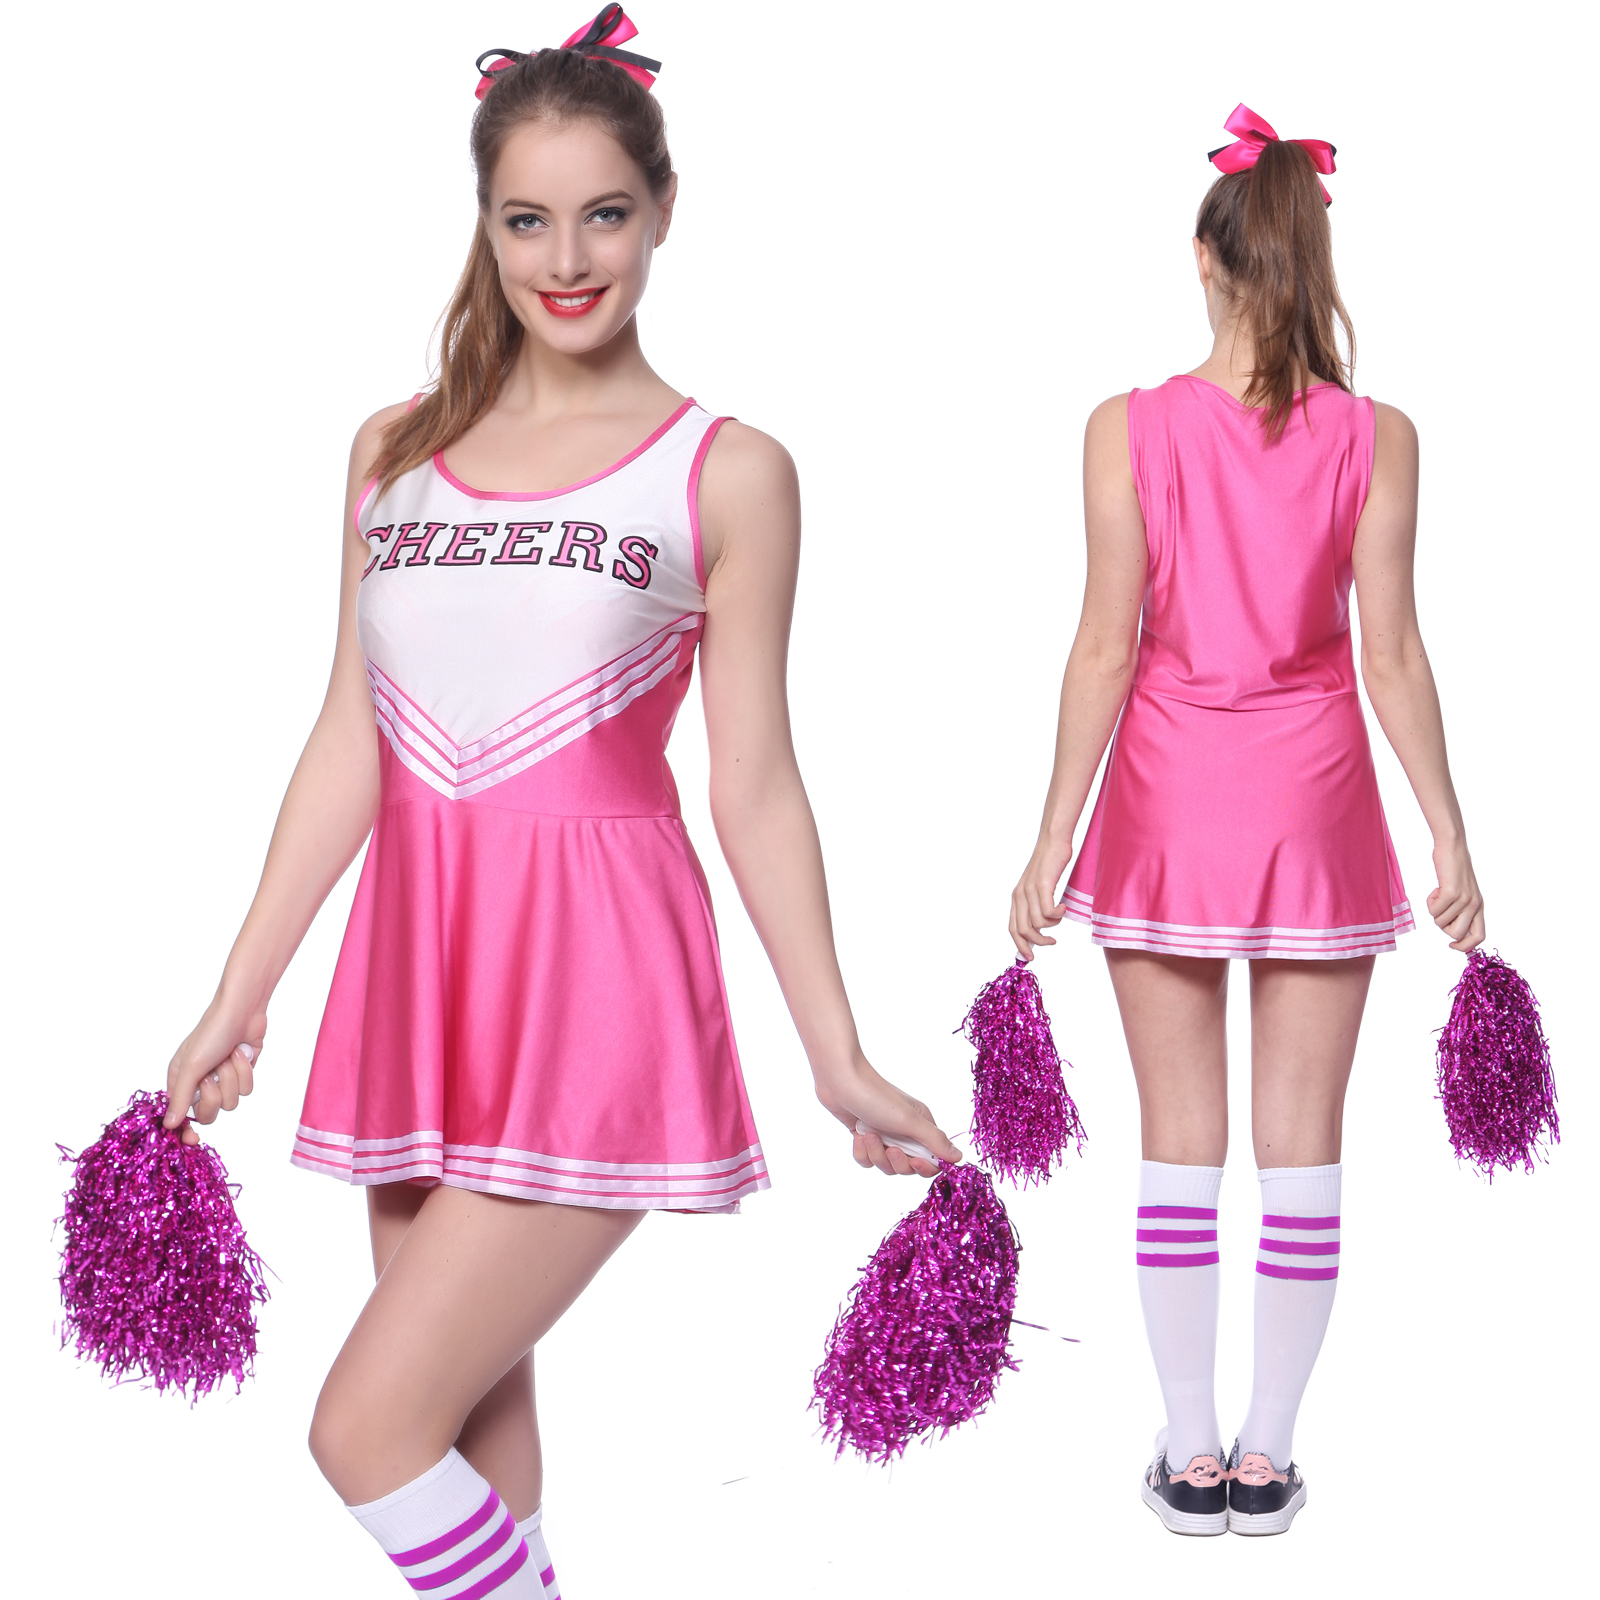 Sexy High School Cheerleader Costume Cheer Girls Uniform